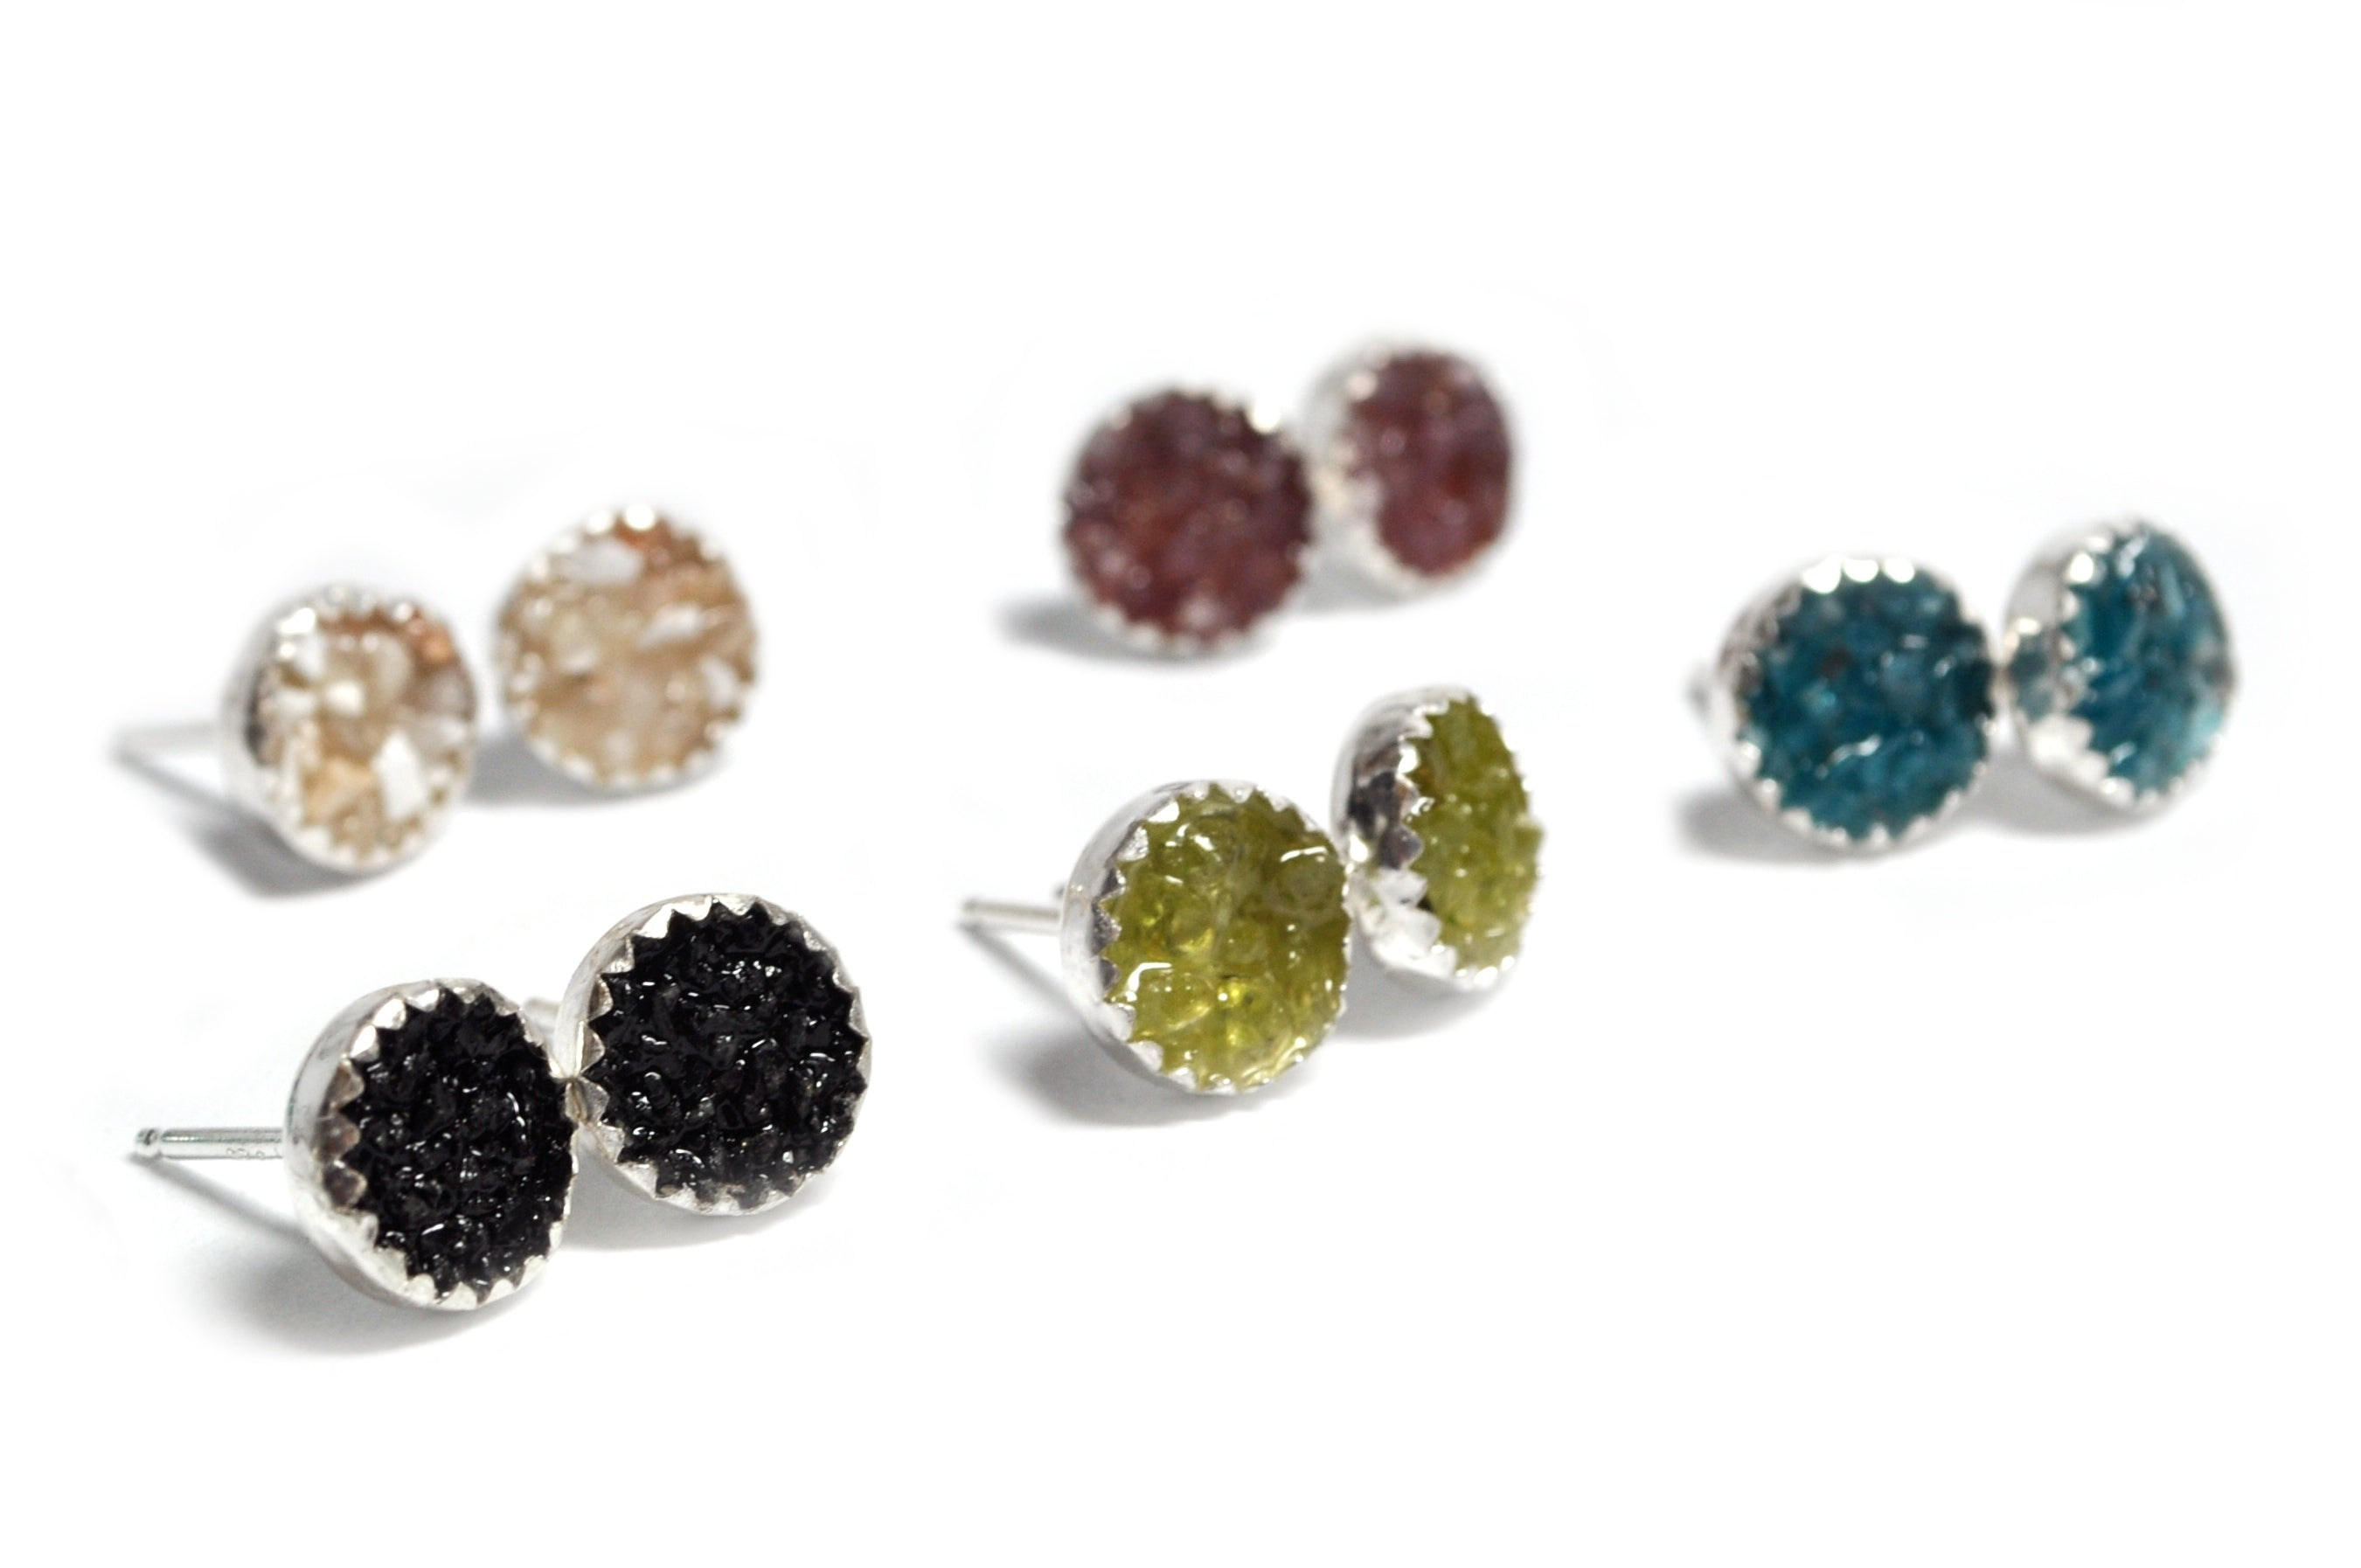 Crushed Stone Studs - Large size - cameraSHY cove